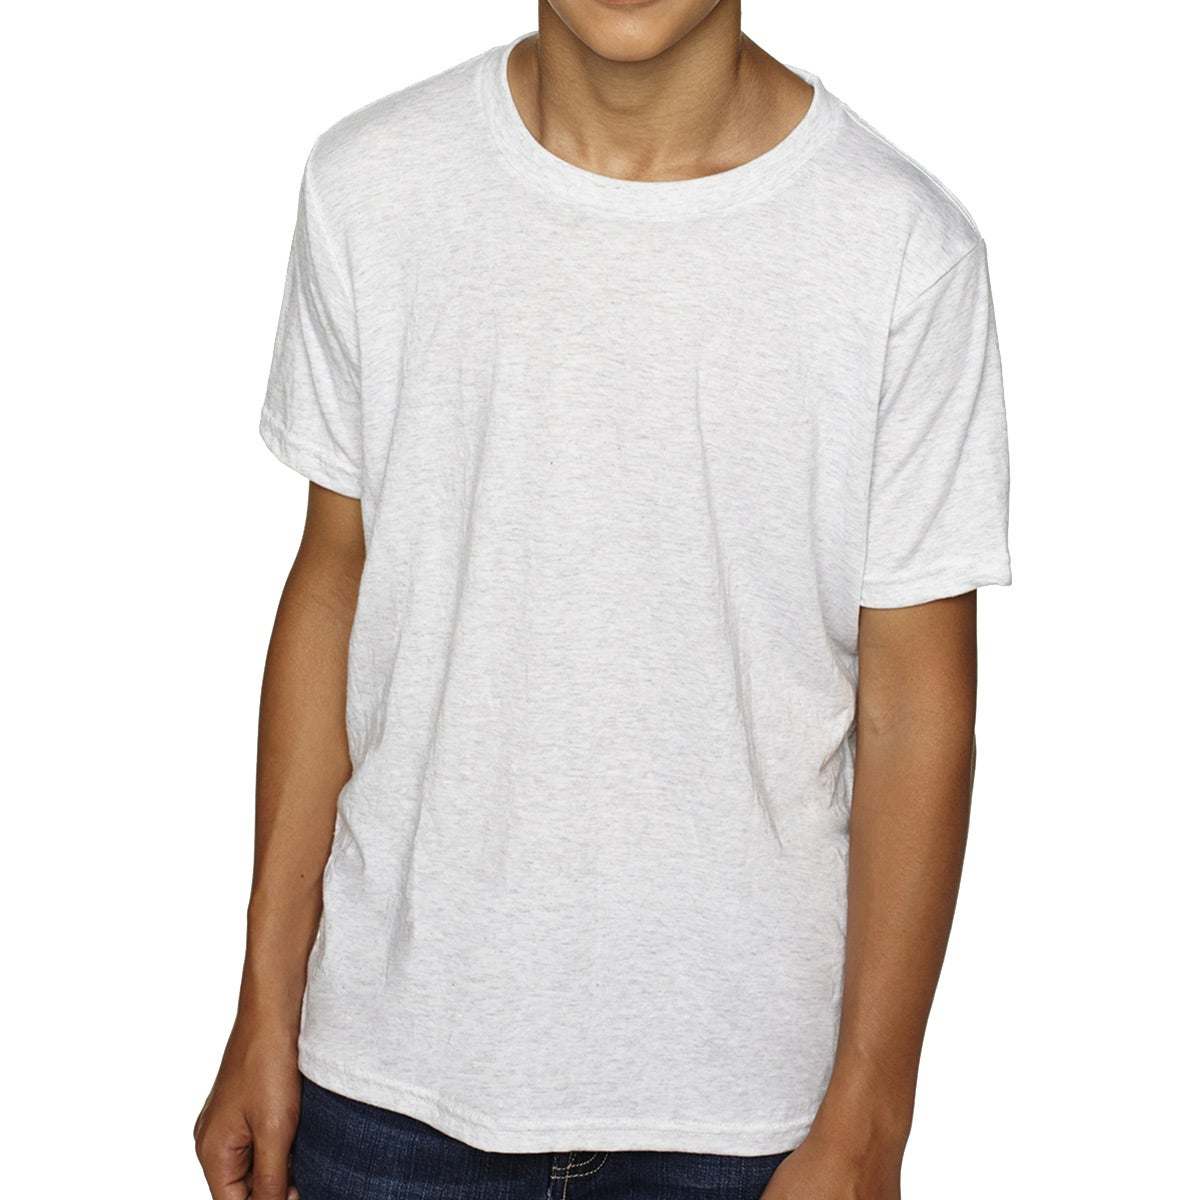 Promotional White Next Level Youth Tri Blend Crew T Shirts With